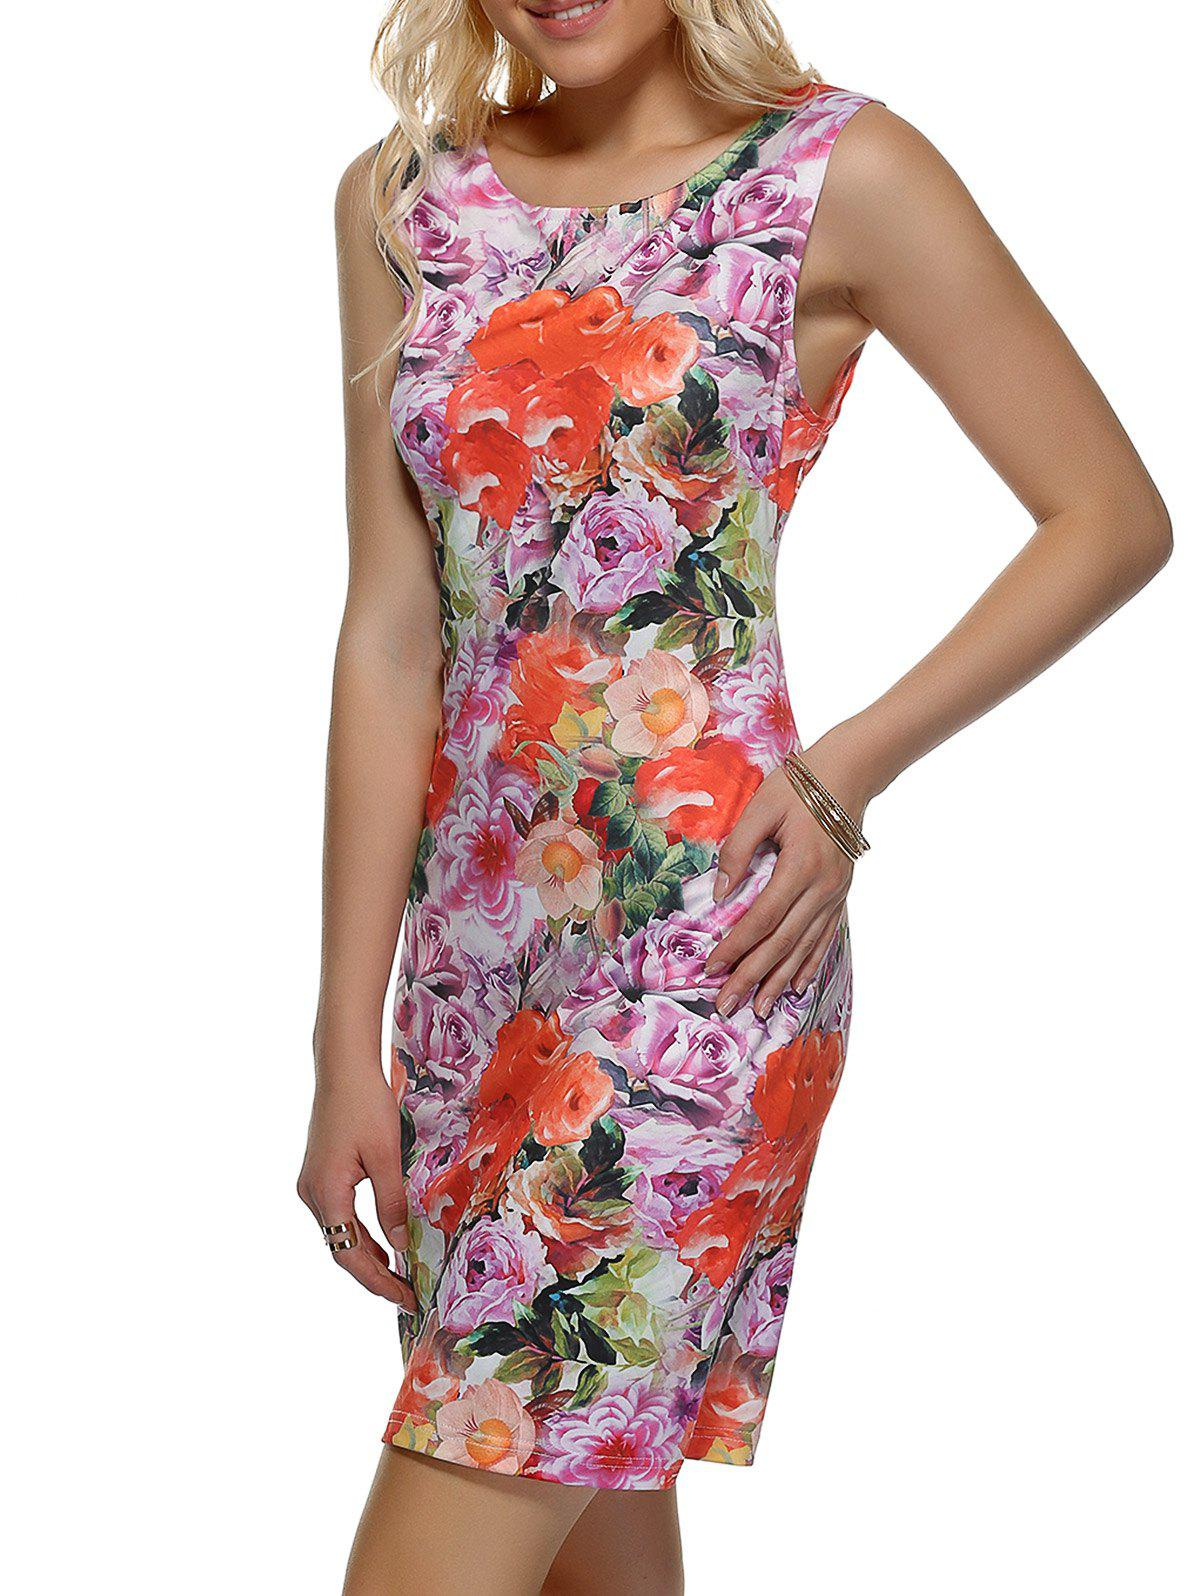 Sleeveless Back Slit Floral Print Dress - COLORMIX XL